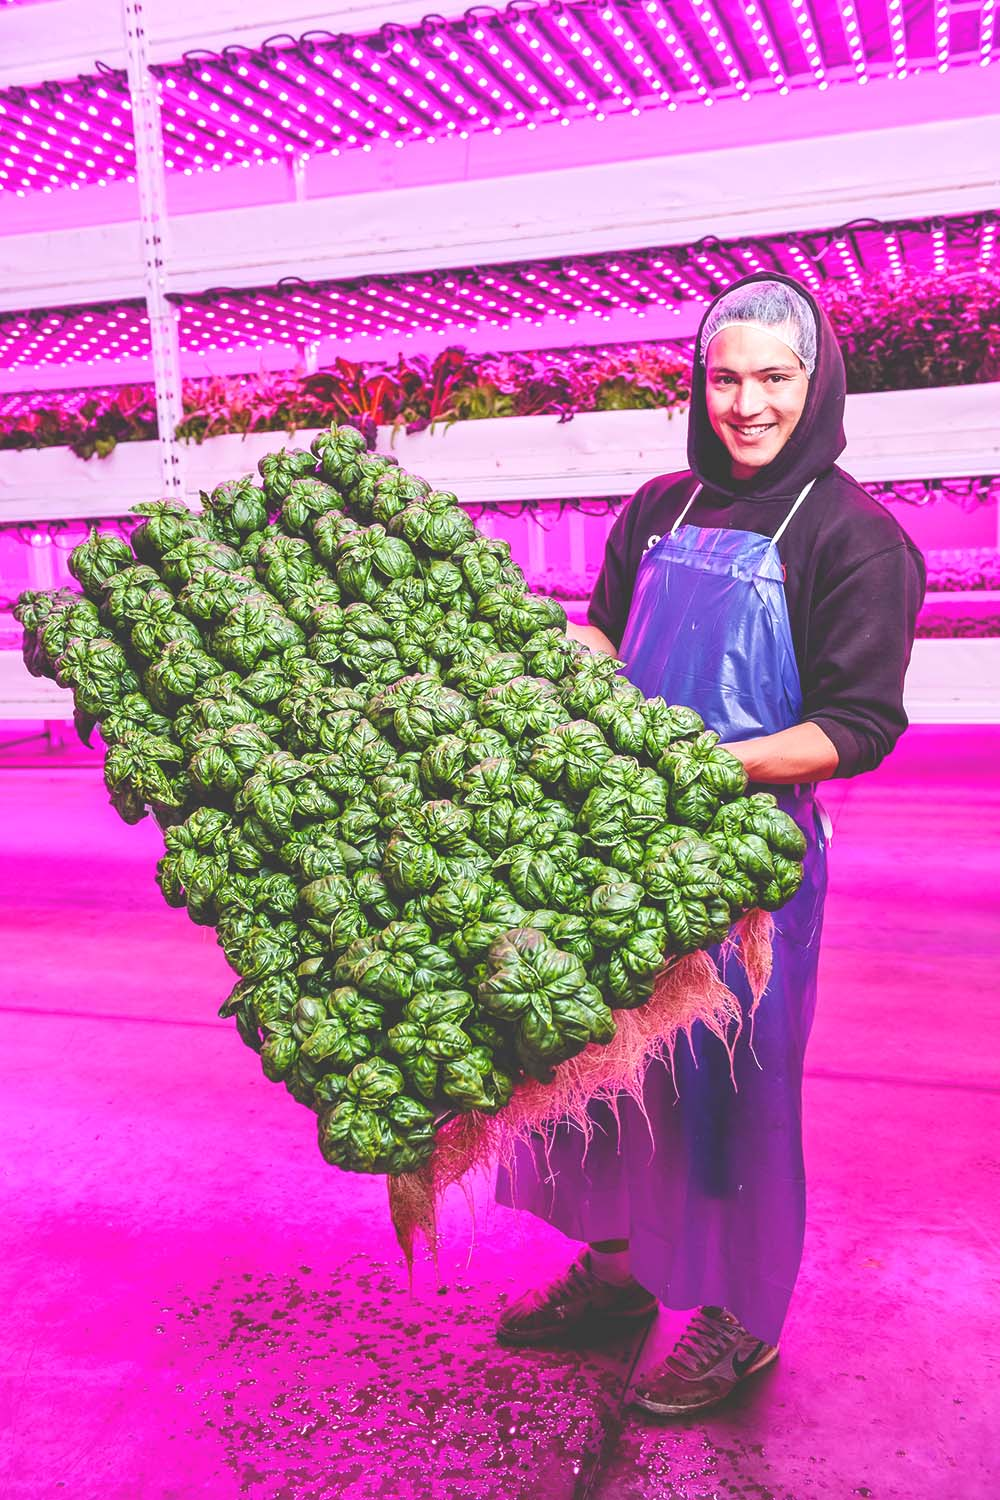 EWP_A Beginners Guide to Vertical Farming from Business Wire